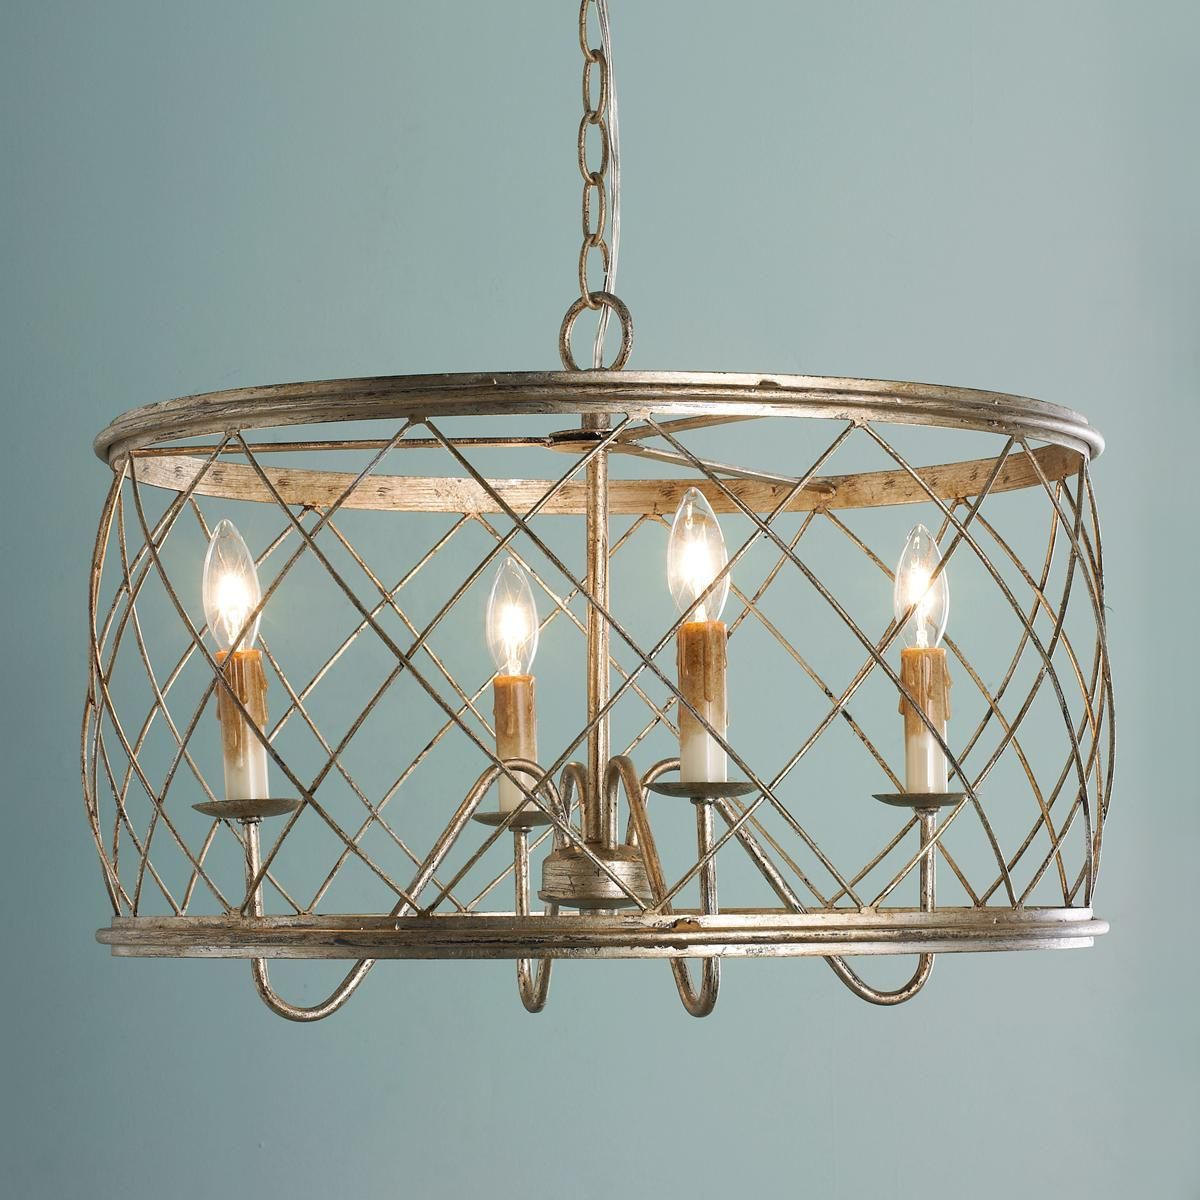 Trellis Cage Drum Chandelier Small Cage Chandelier Ceiling Chandelier Drum Chandelier